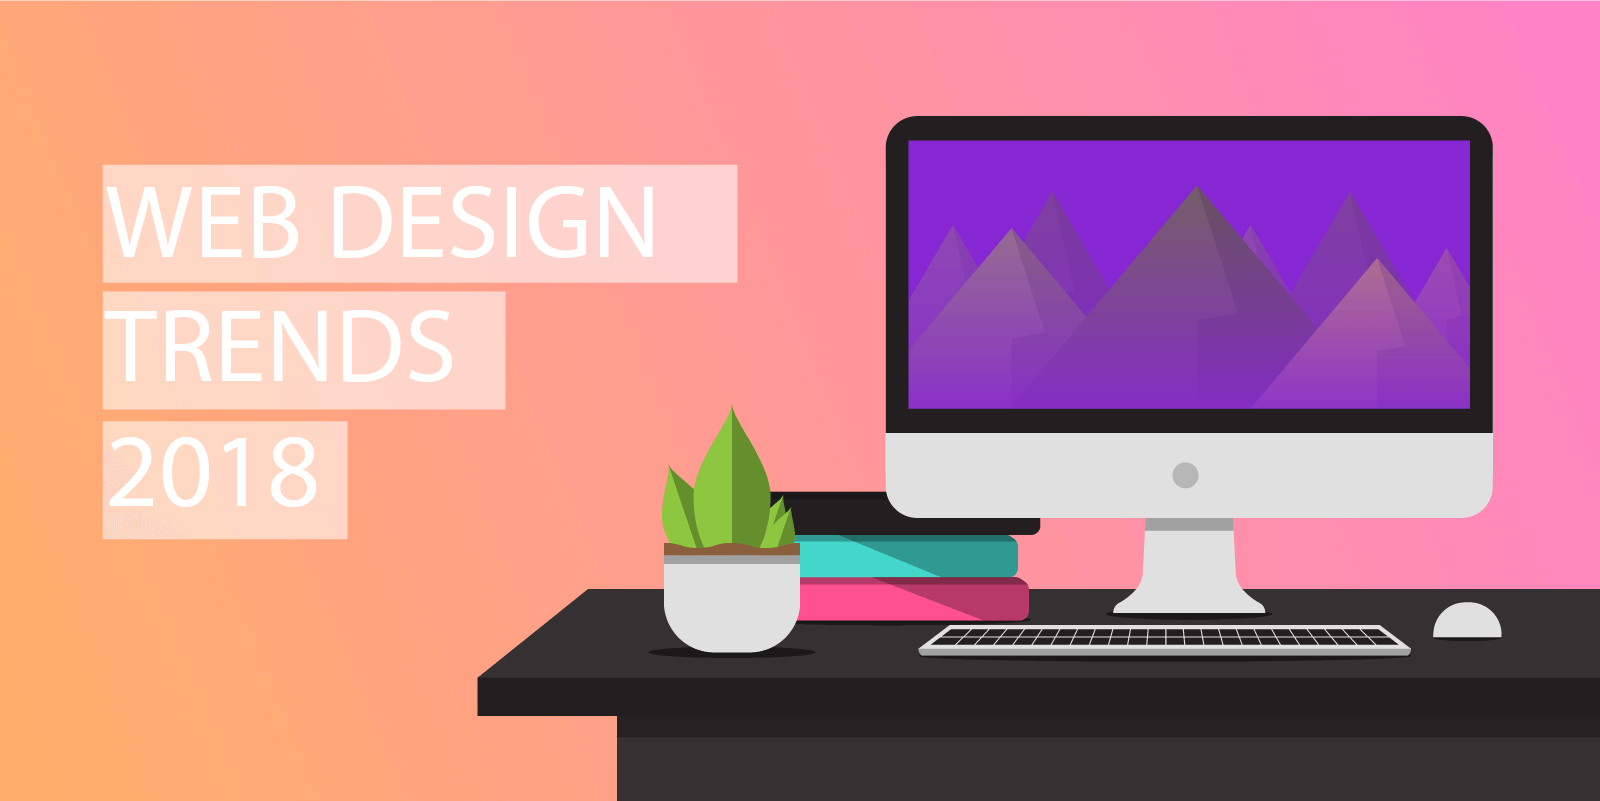 Web Design Trends To Watch Out For In 2018